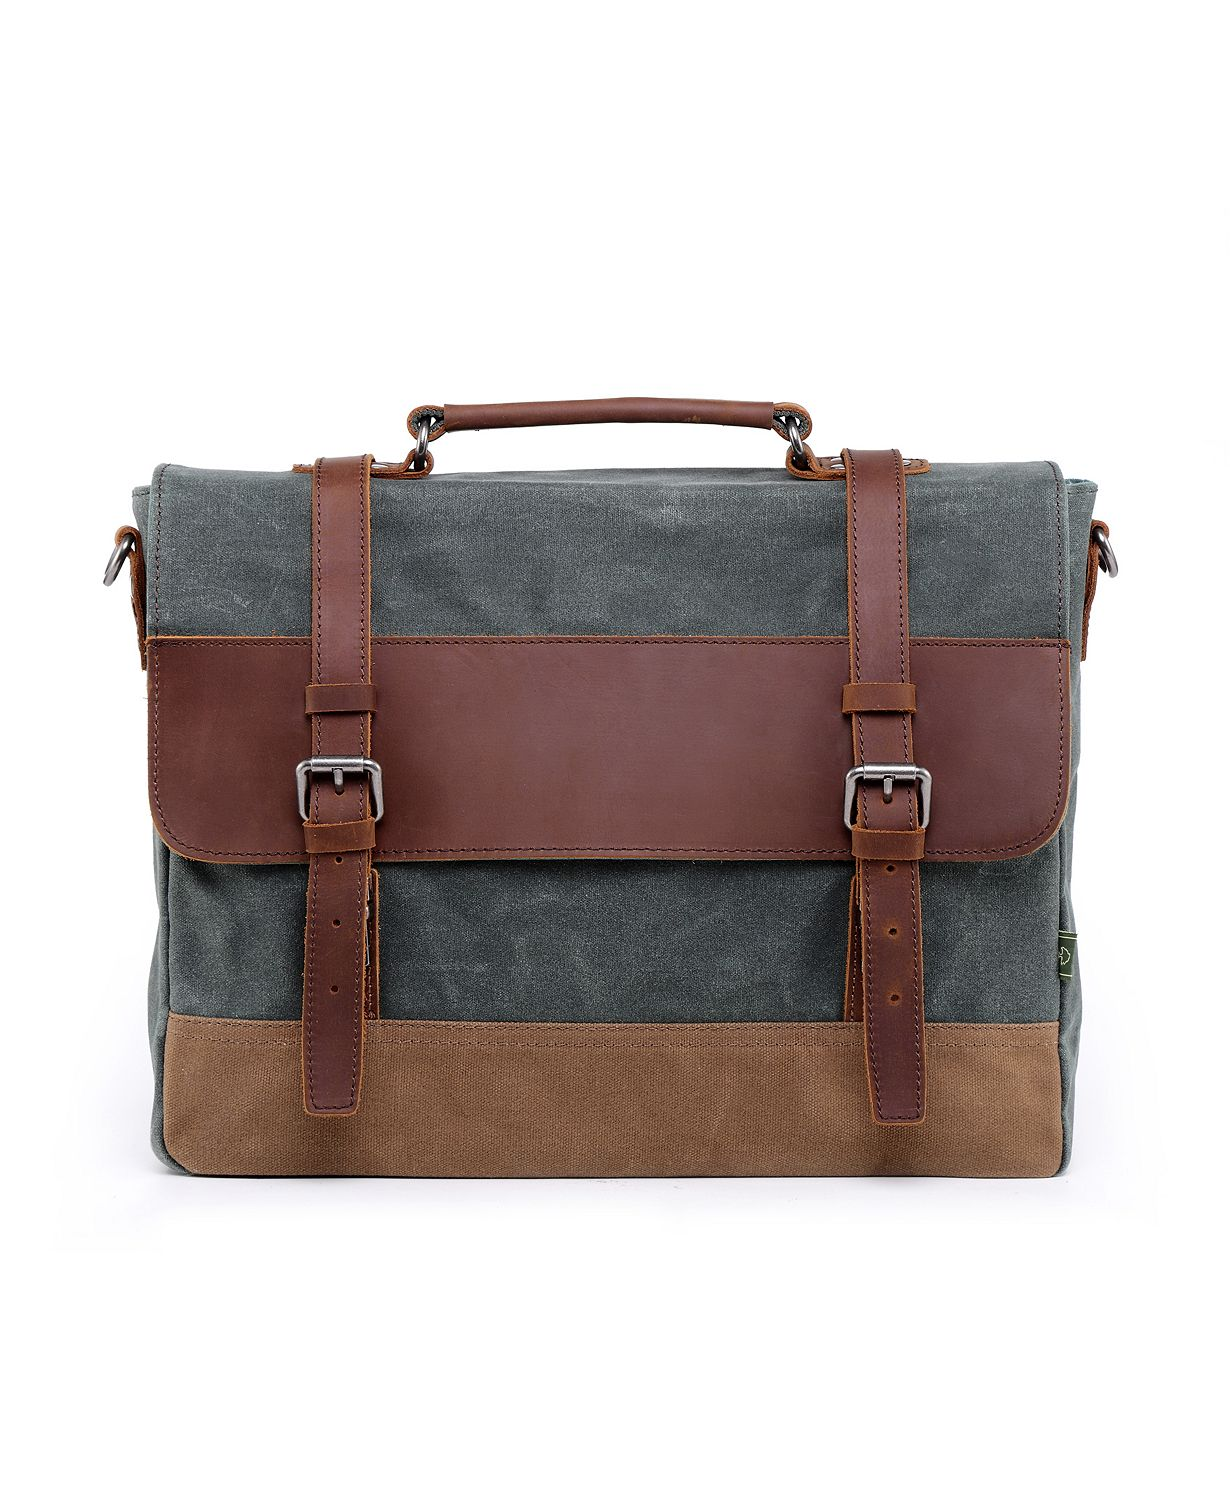 Waxed canvas briefcase - so perfect for autumn. Come discover Fall Outfits, Eyewear, Florals, Recipes + Me Unfiltered.